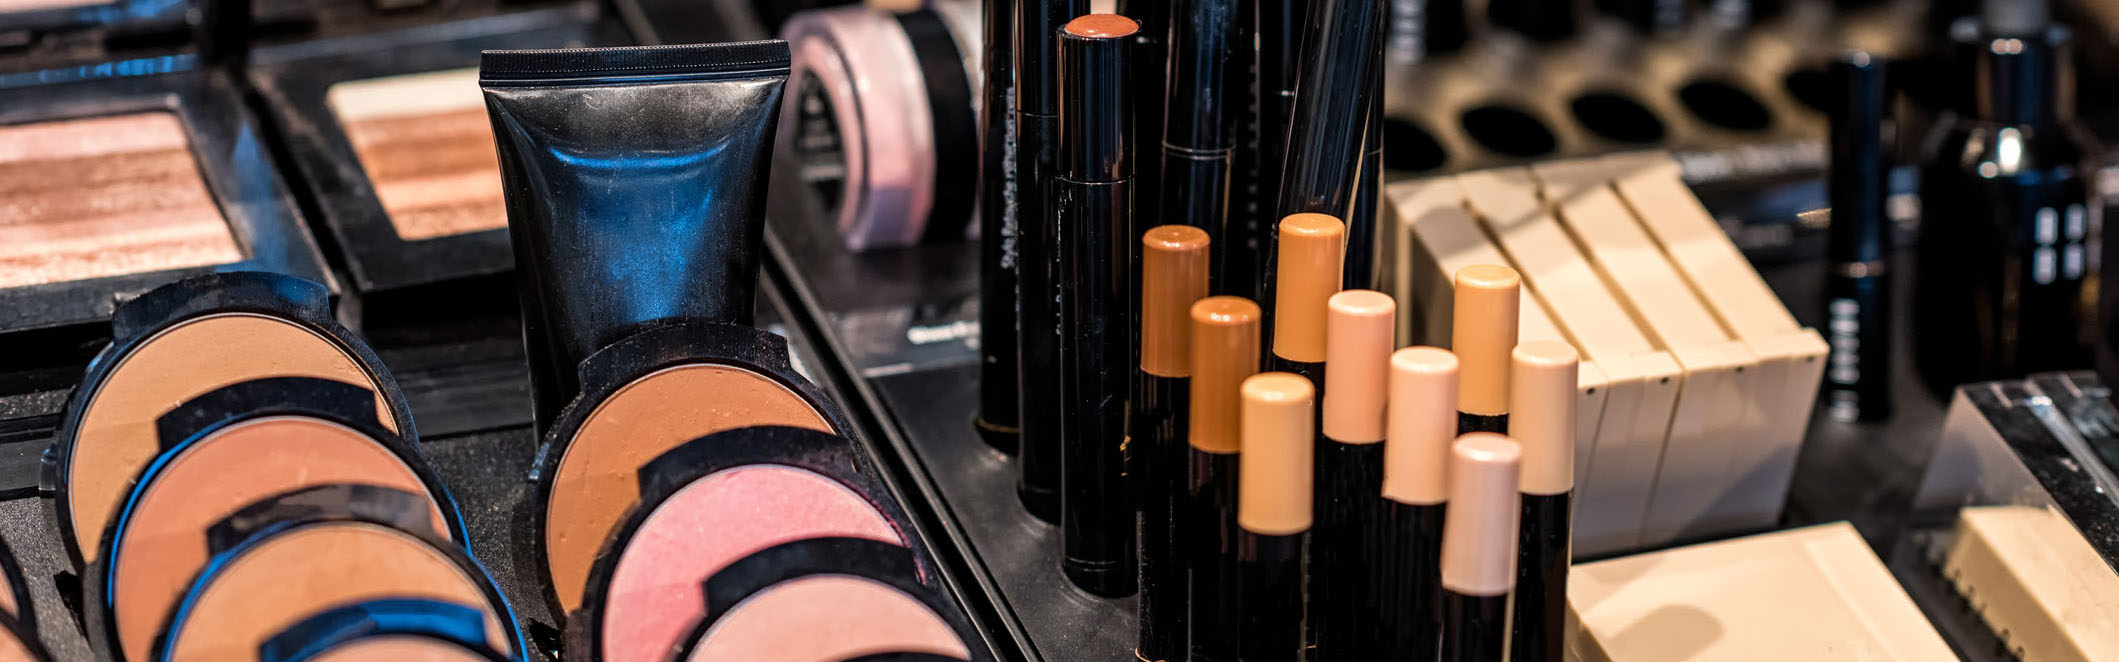 Best Foundations For Oily Skin, Be Shine Free